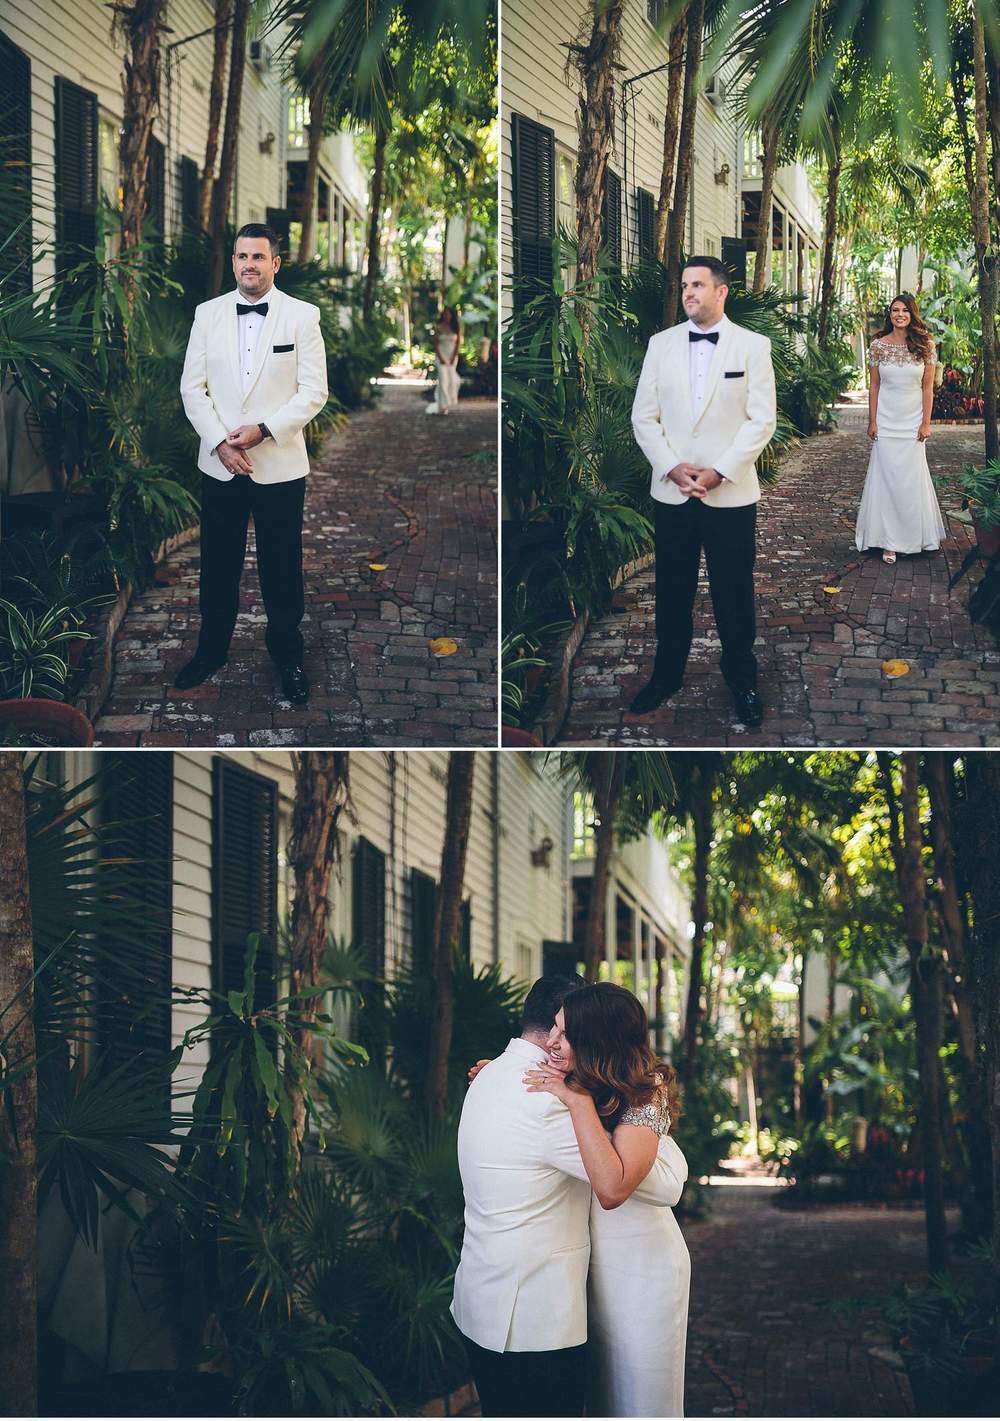 audubon-house-key-west-wedding-photographer-daniel-lateulade-0006.JPG